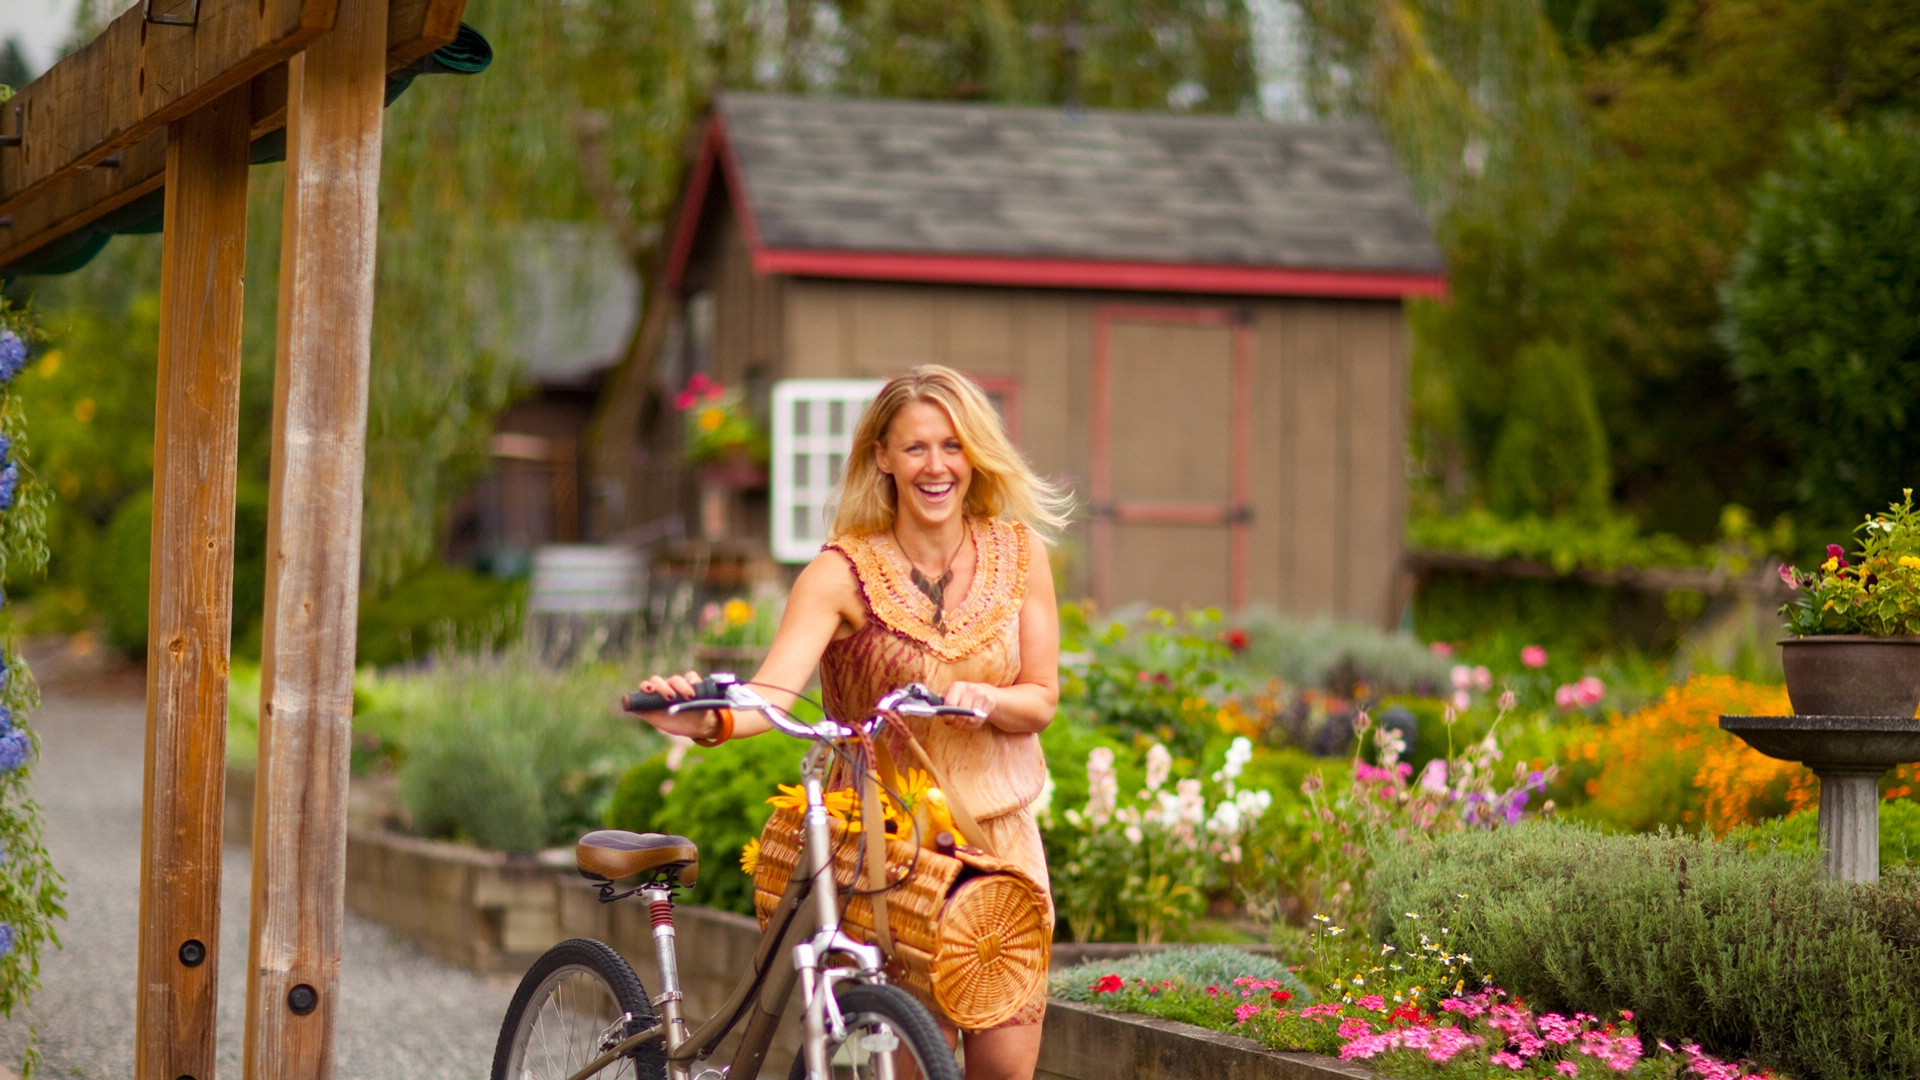 Woman smiling walking her bike